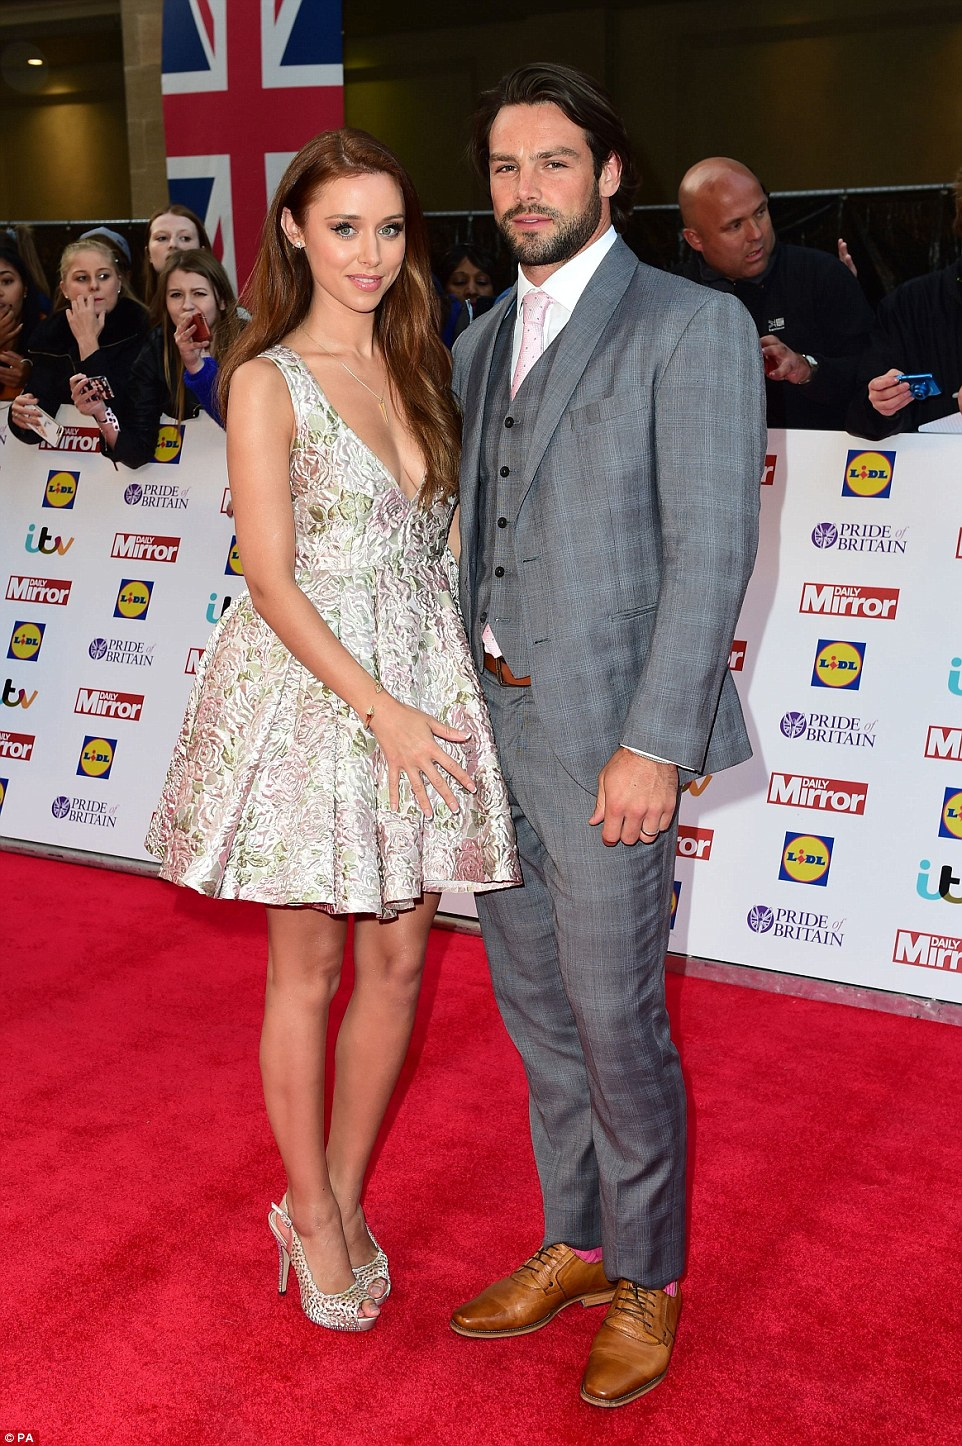 Pretty as a petal:Una Foden showed off her slim limbs in a cute floral dress as she attended the event with husband Ben